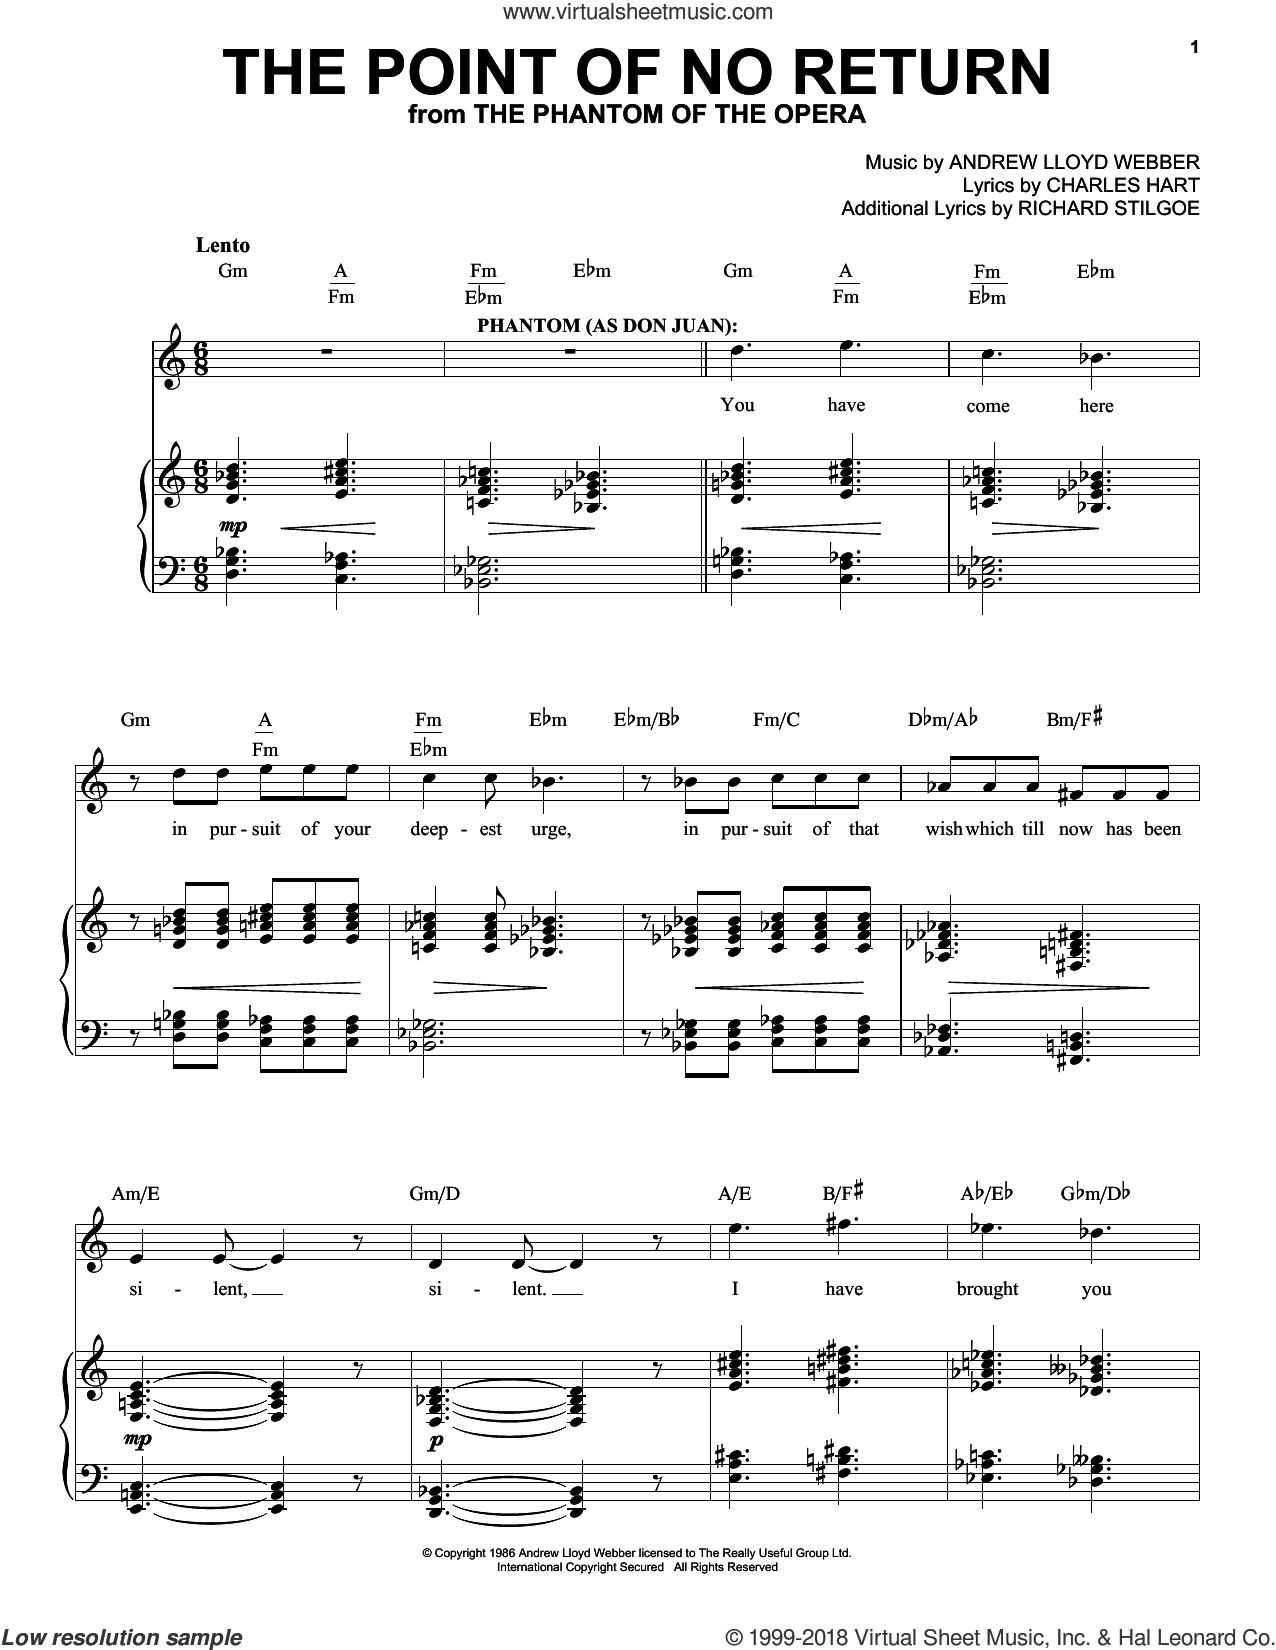 The Point Of No Return (from The Phantom Of The Opera) sheet music for voice and piano by Andrew Lloyd Webber and Phantom Of The Opera (Musical), intermediate skill level